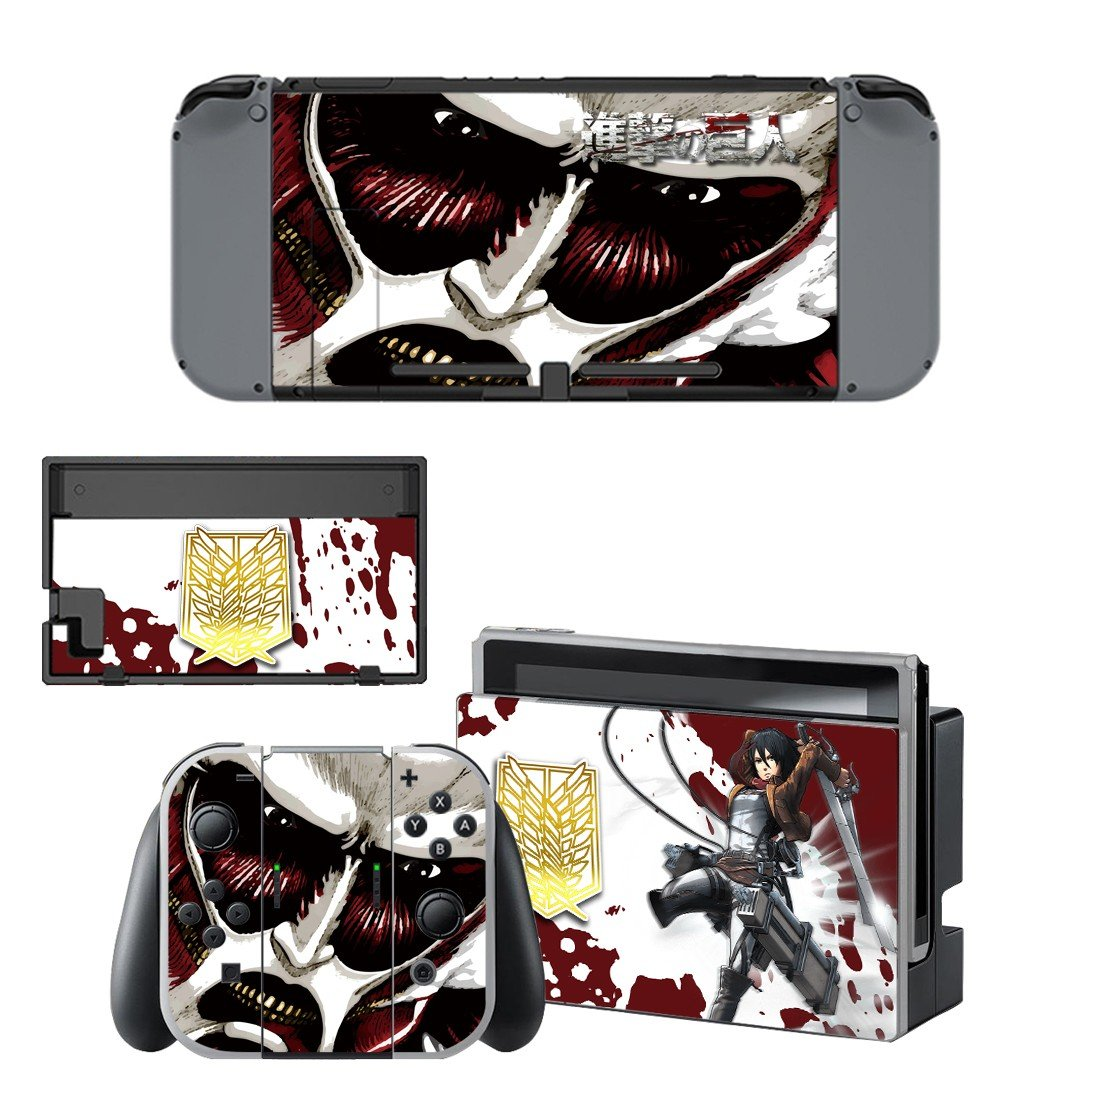 Attack on titan decal for Nintendo switch console sticker skin